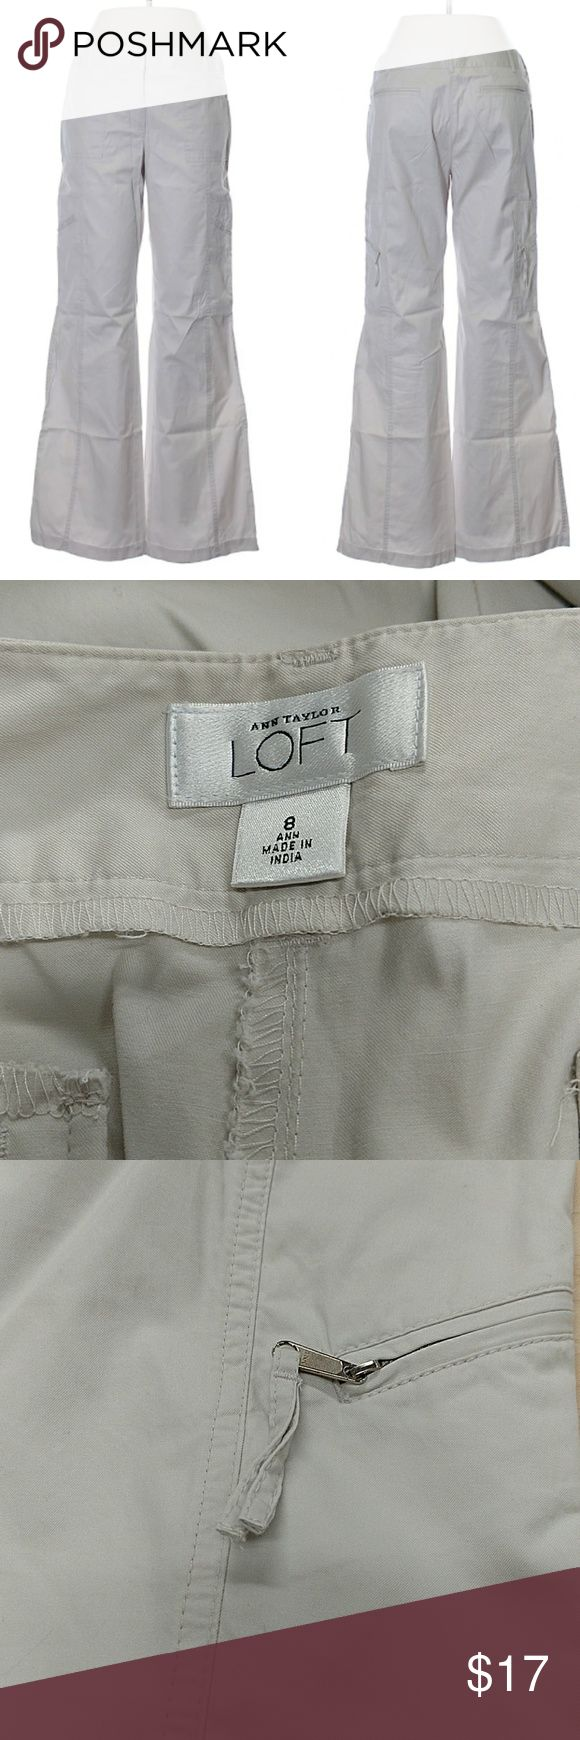 "Ann Taylor Baggy Cargo Pants Excellent condition. 32"" waist, 30"" inseam, zipper leg pockets. 100% cotton, mid rise, off white/light putty color. All pictures are of the actual item that you will receive. Smoke-free home. LOFT Pants Wide Leg"